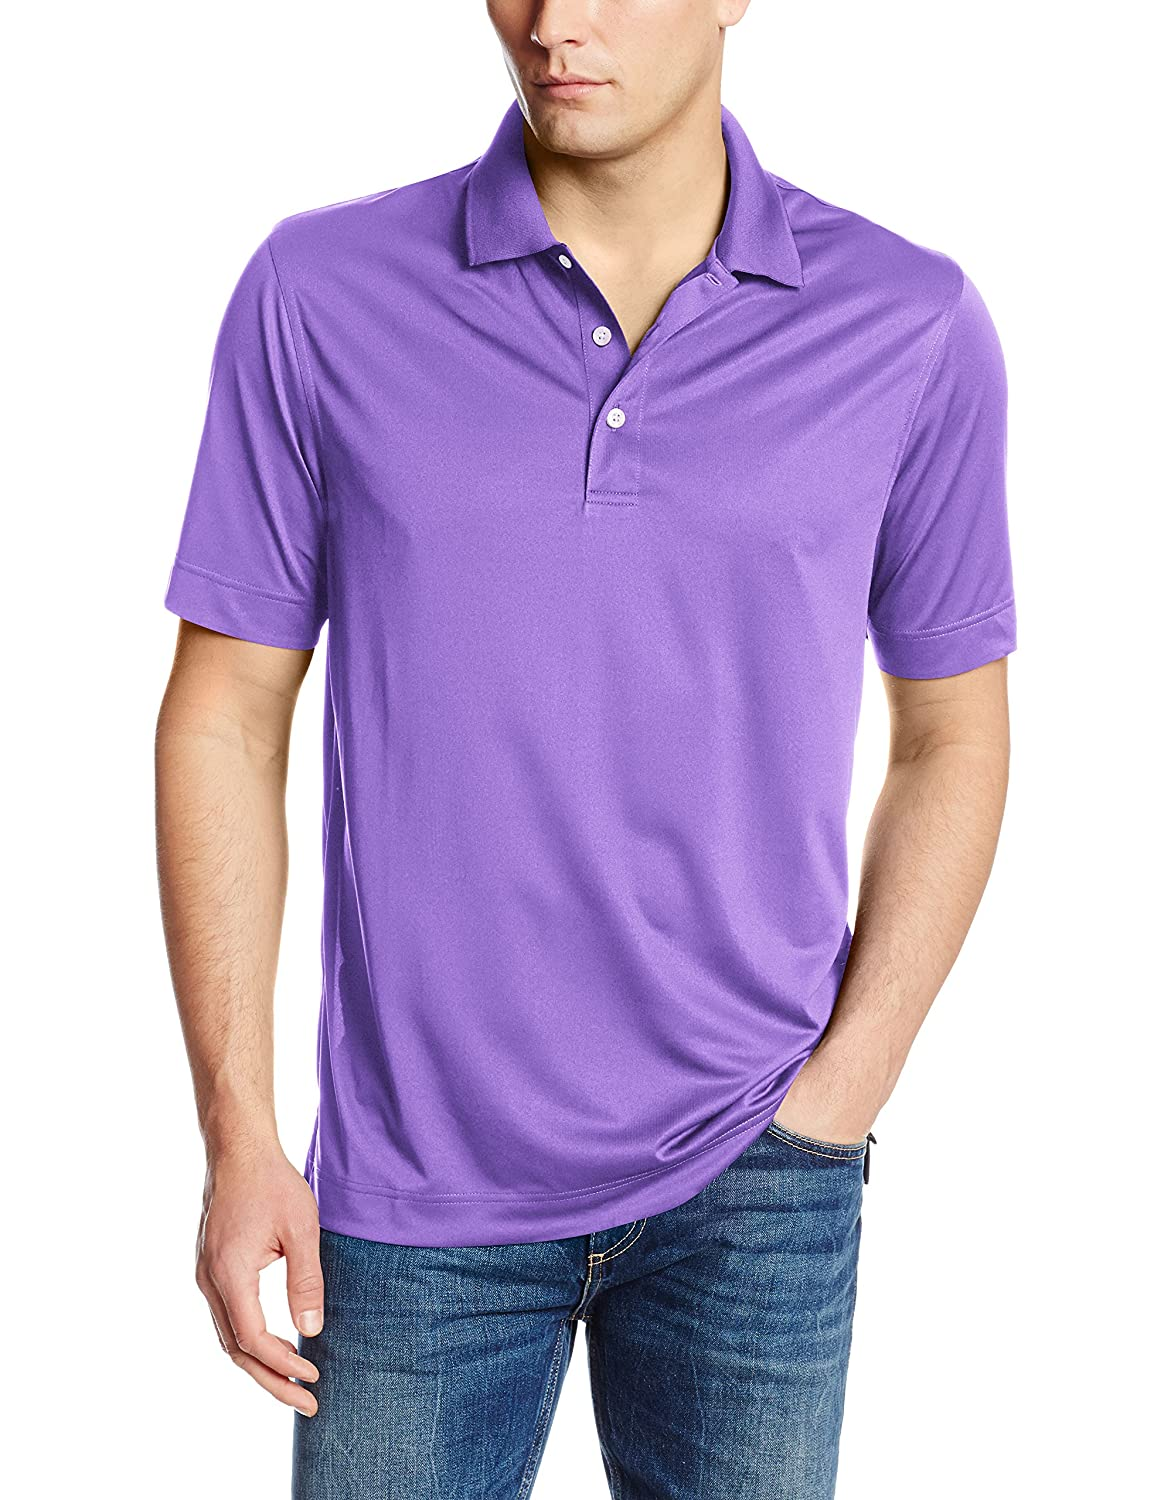 Courage S (US taille) (US taille) Cutter & Buck - Polo - Solid - Manches Courtes Homme